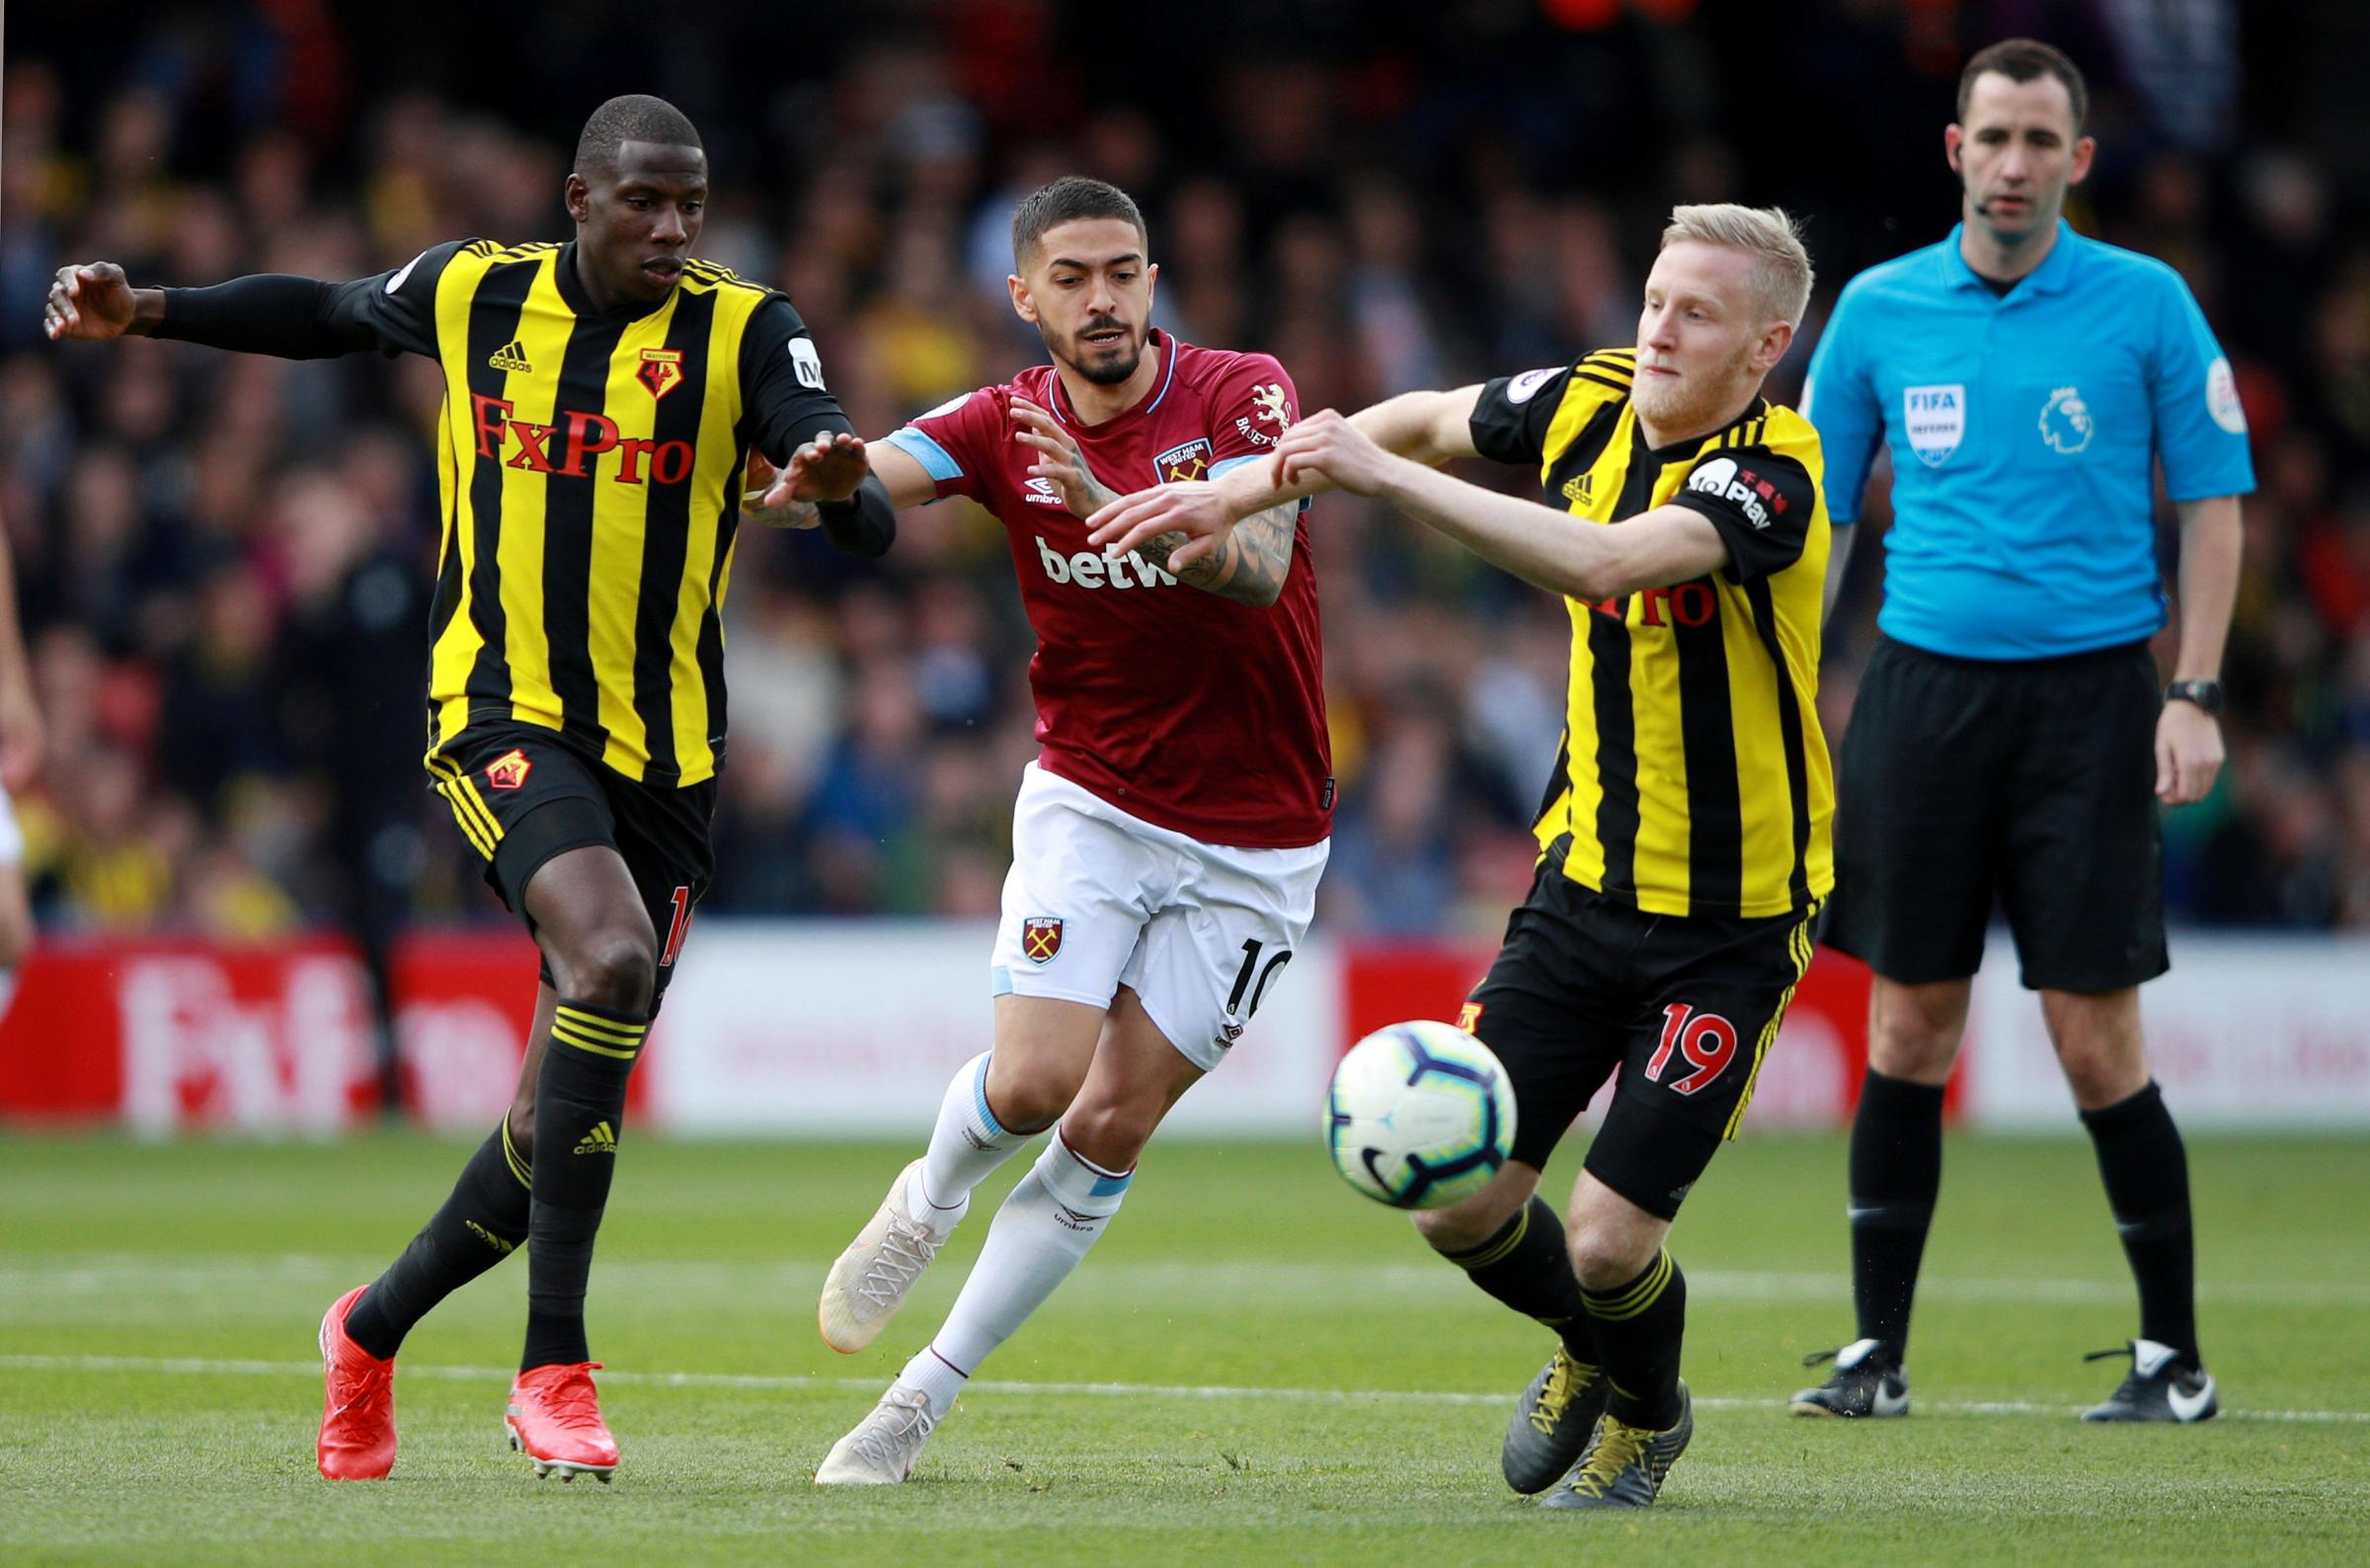 Watford were well beaten at home by West Ham. Picture: Action Images